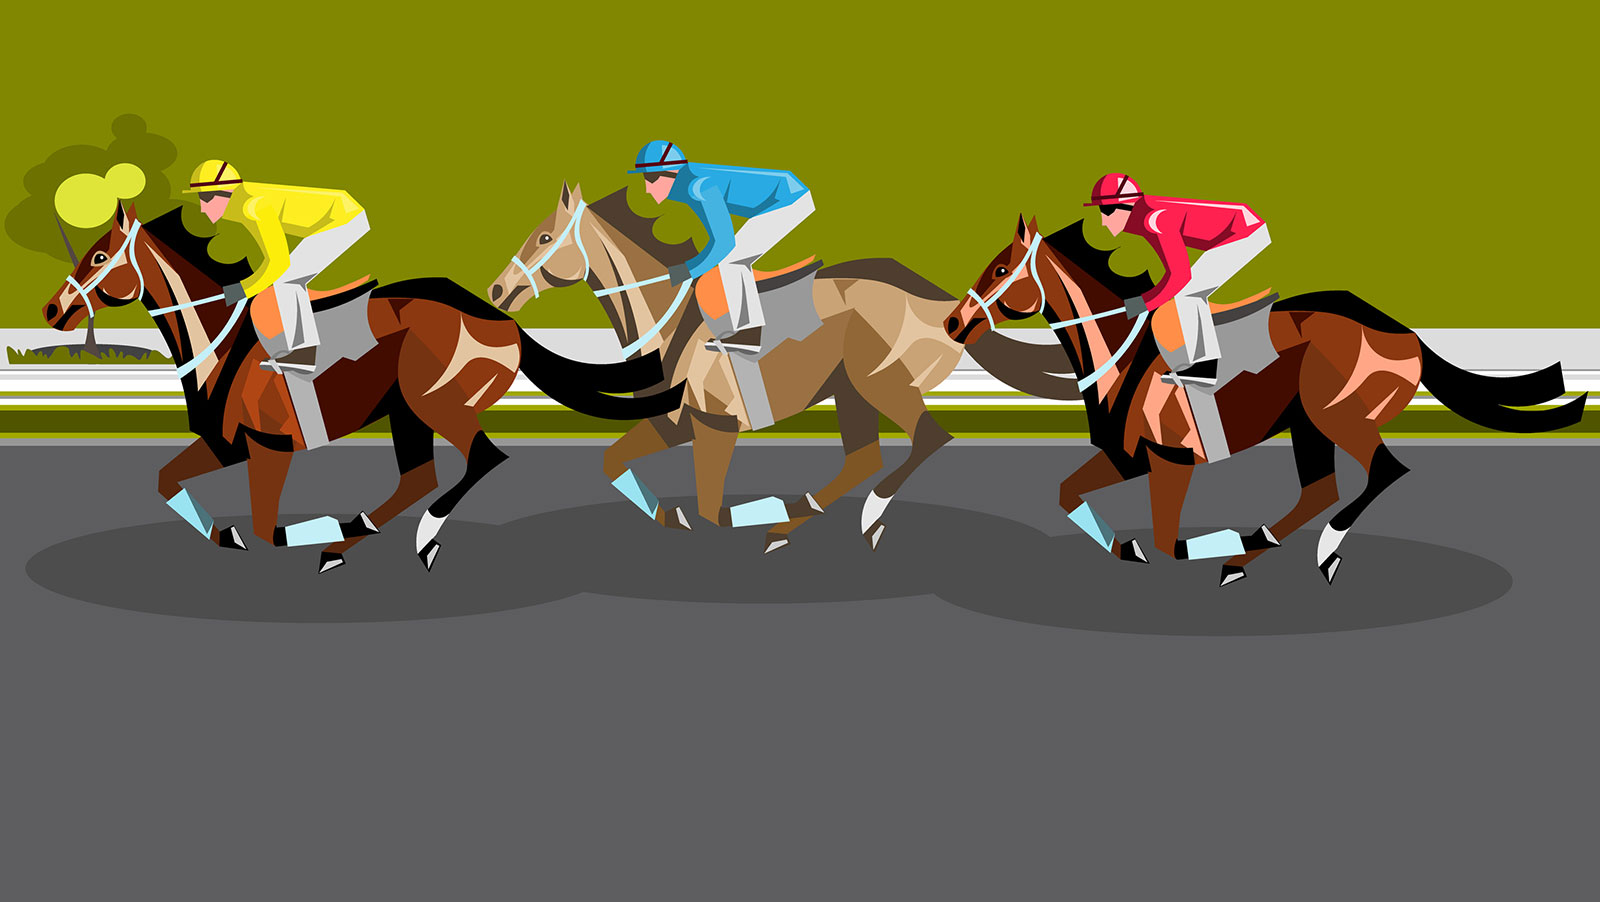 beckys-affiliated-innovation-in-horse-racing-sports-betting-with-betvictor4